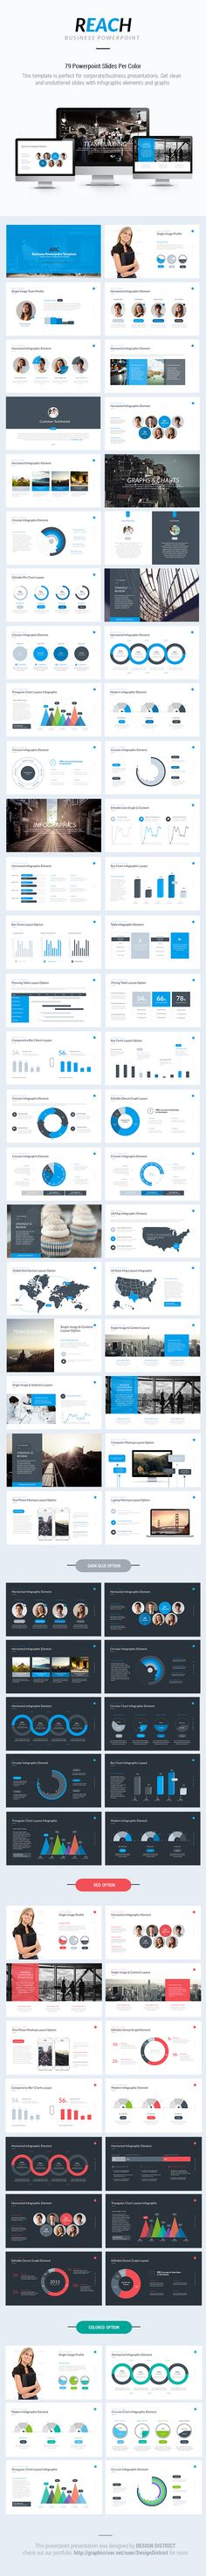 Business Powerpoint Template on Behance